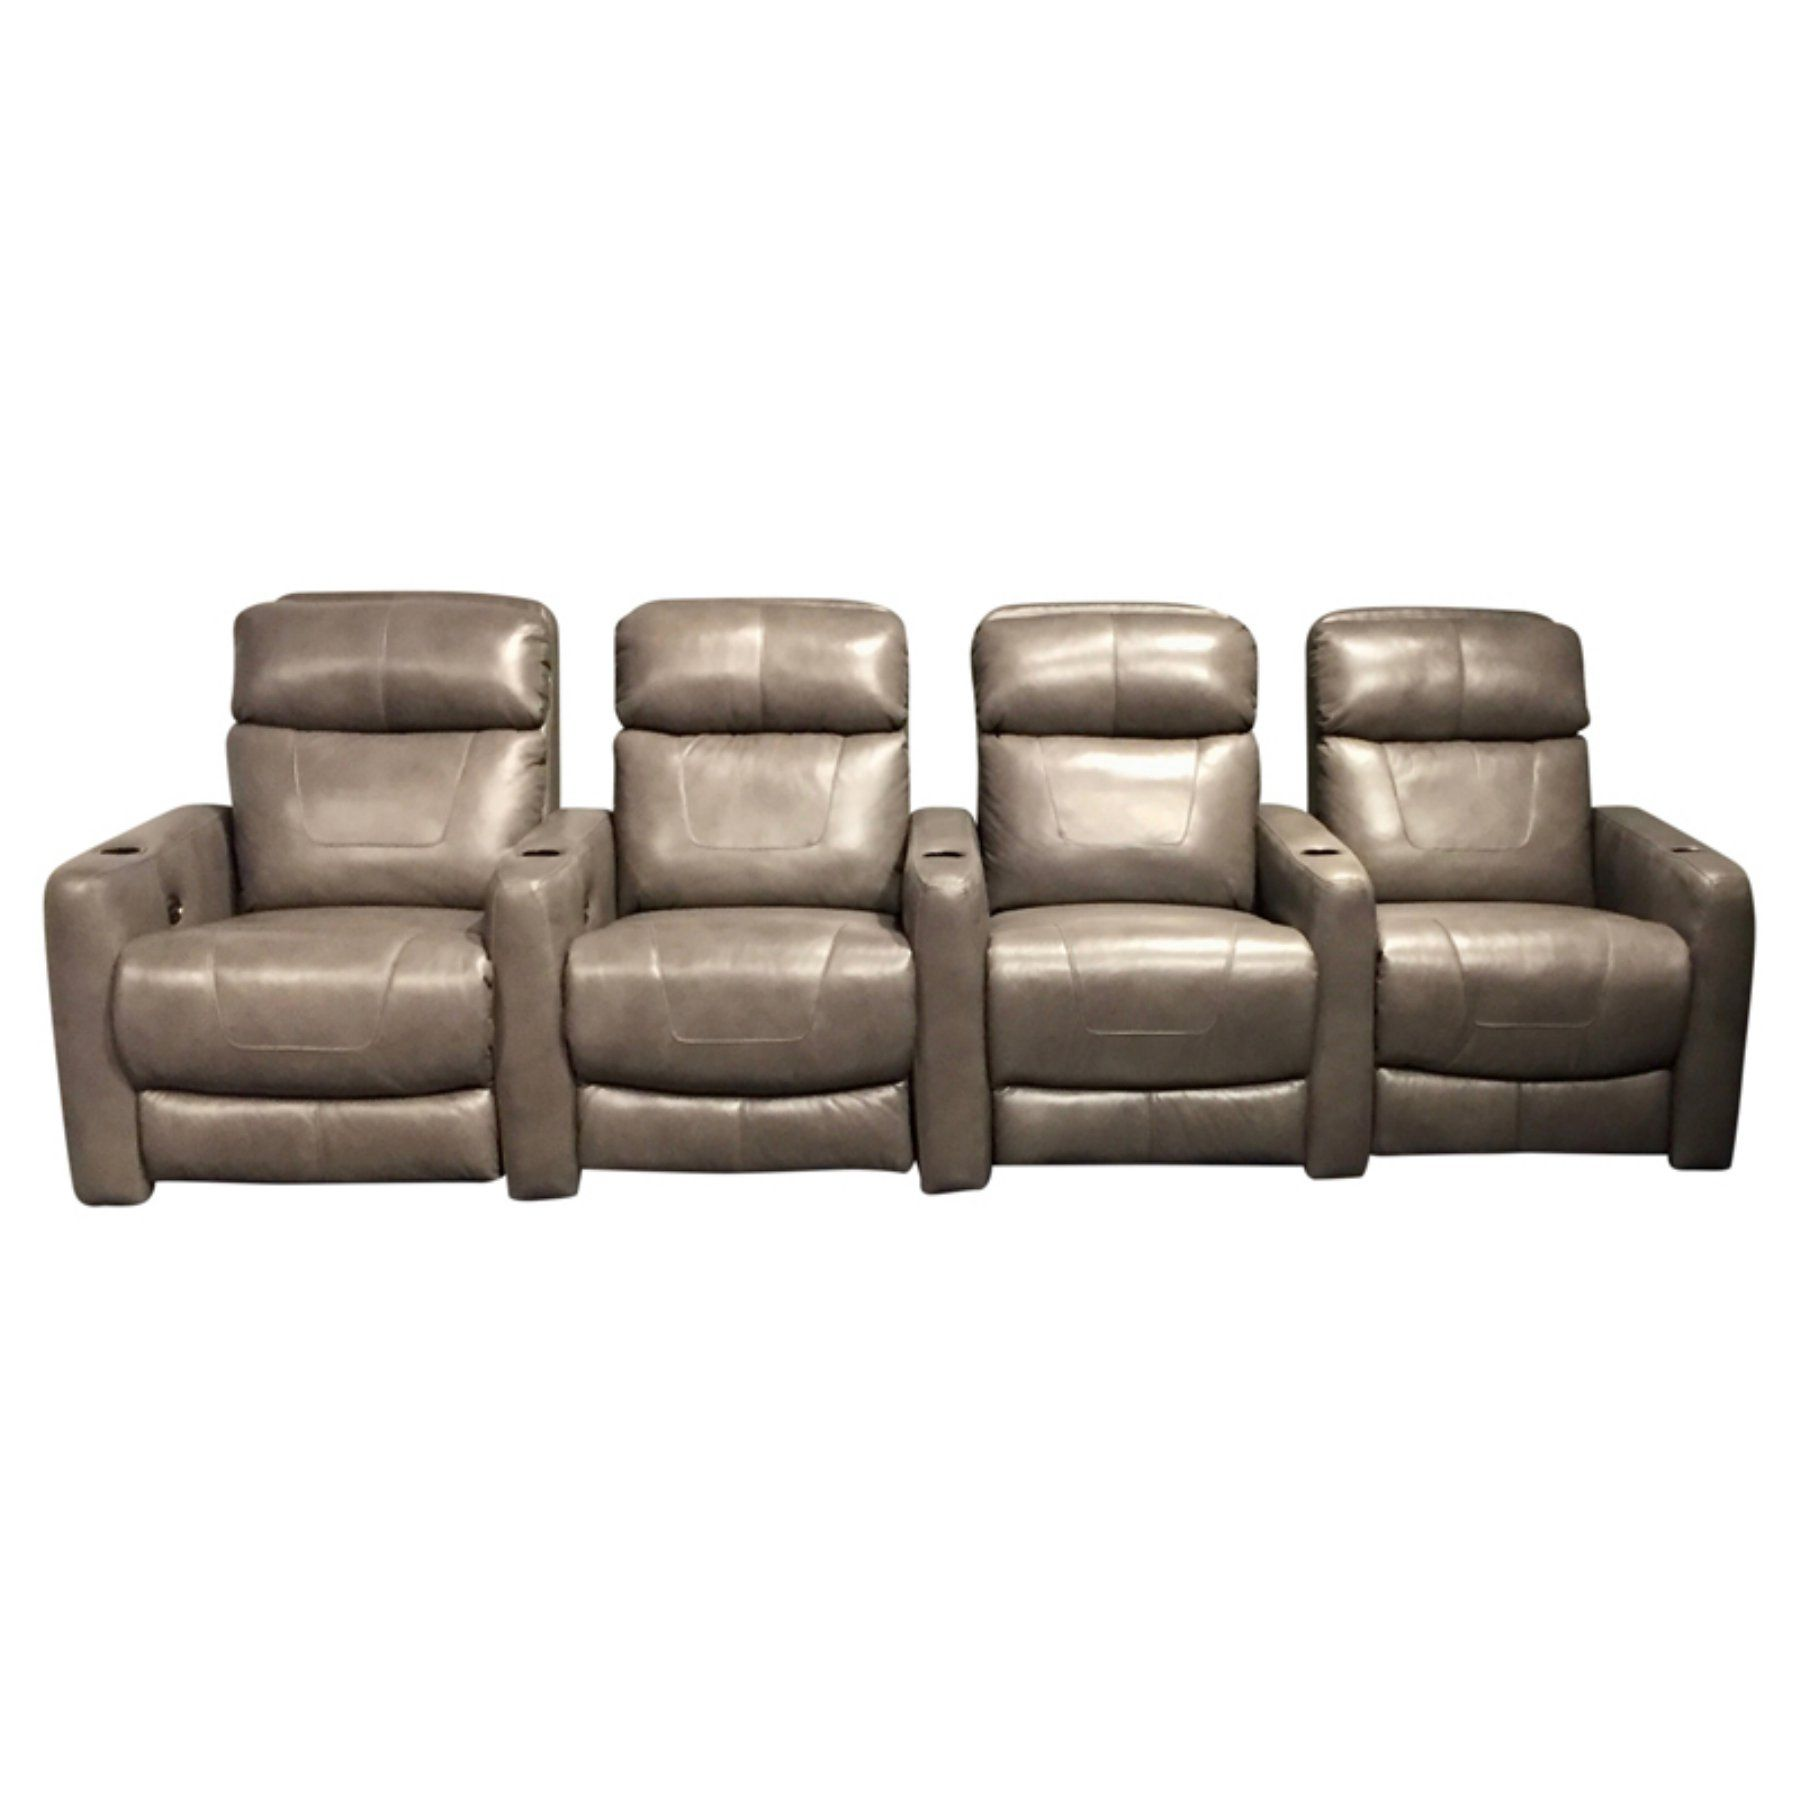 Home Theater Seat Design Ideas: Recline Designs Showtime Home Theater Group With Power